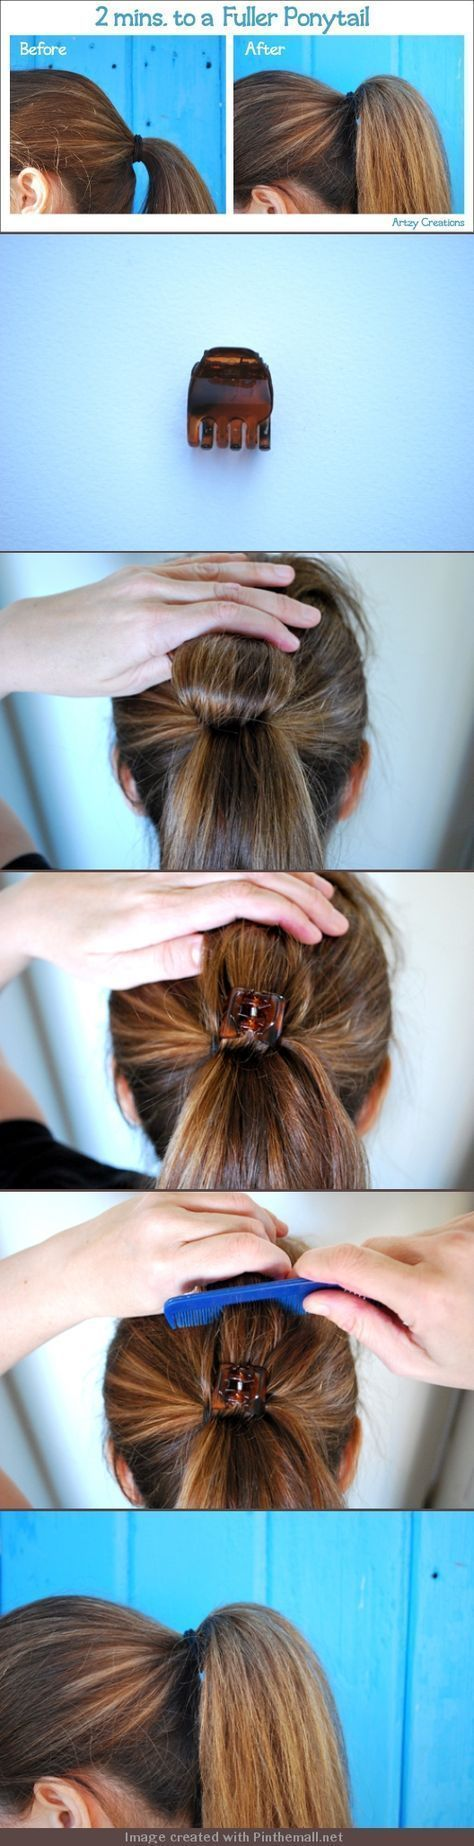 2mins For A Fuller Ponytail. 1) Divide ponytail in half flip hair back. Hold th #fullerponytail